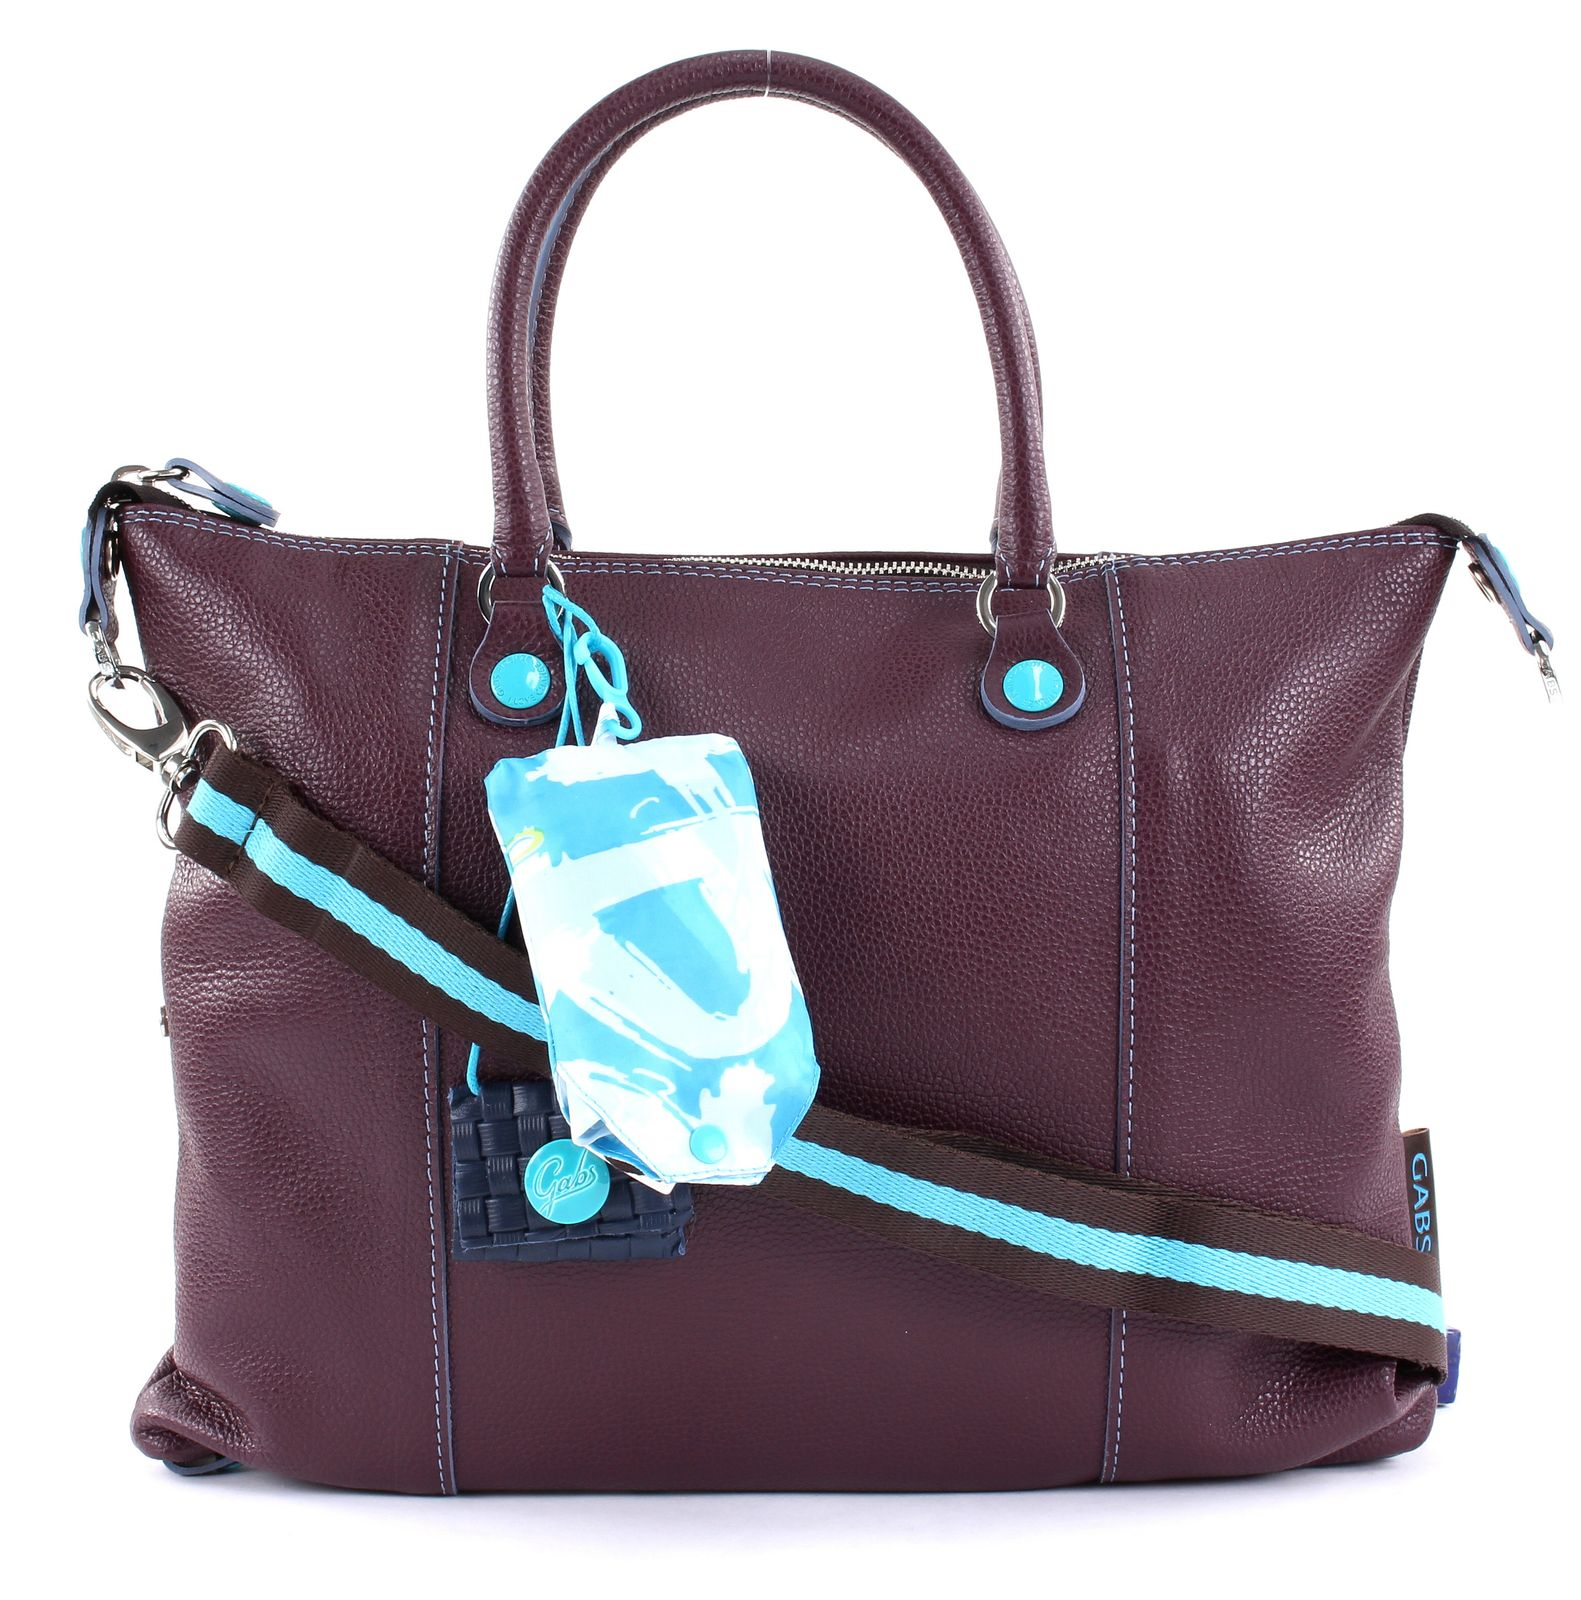 0c8a29b66e6 ... C0502G000030T2 P0086 C0001G000030T2 P0086 C0503Gabs G3 Hand Bag M  Bordeaux / 94,80 €*Only possible if you pay by Paypal, Amazon Payments,  Credit Card, ...